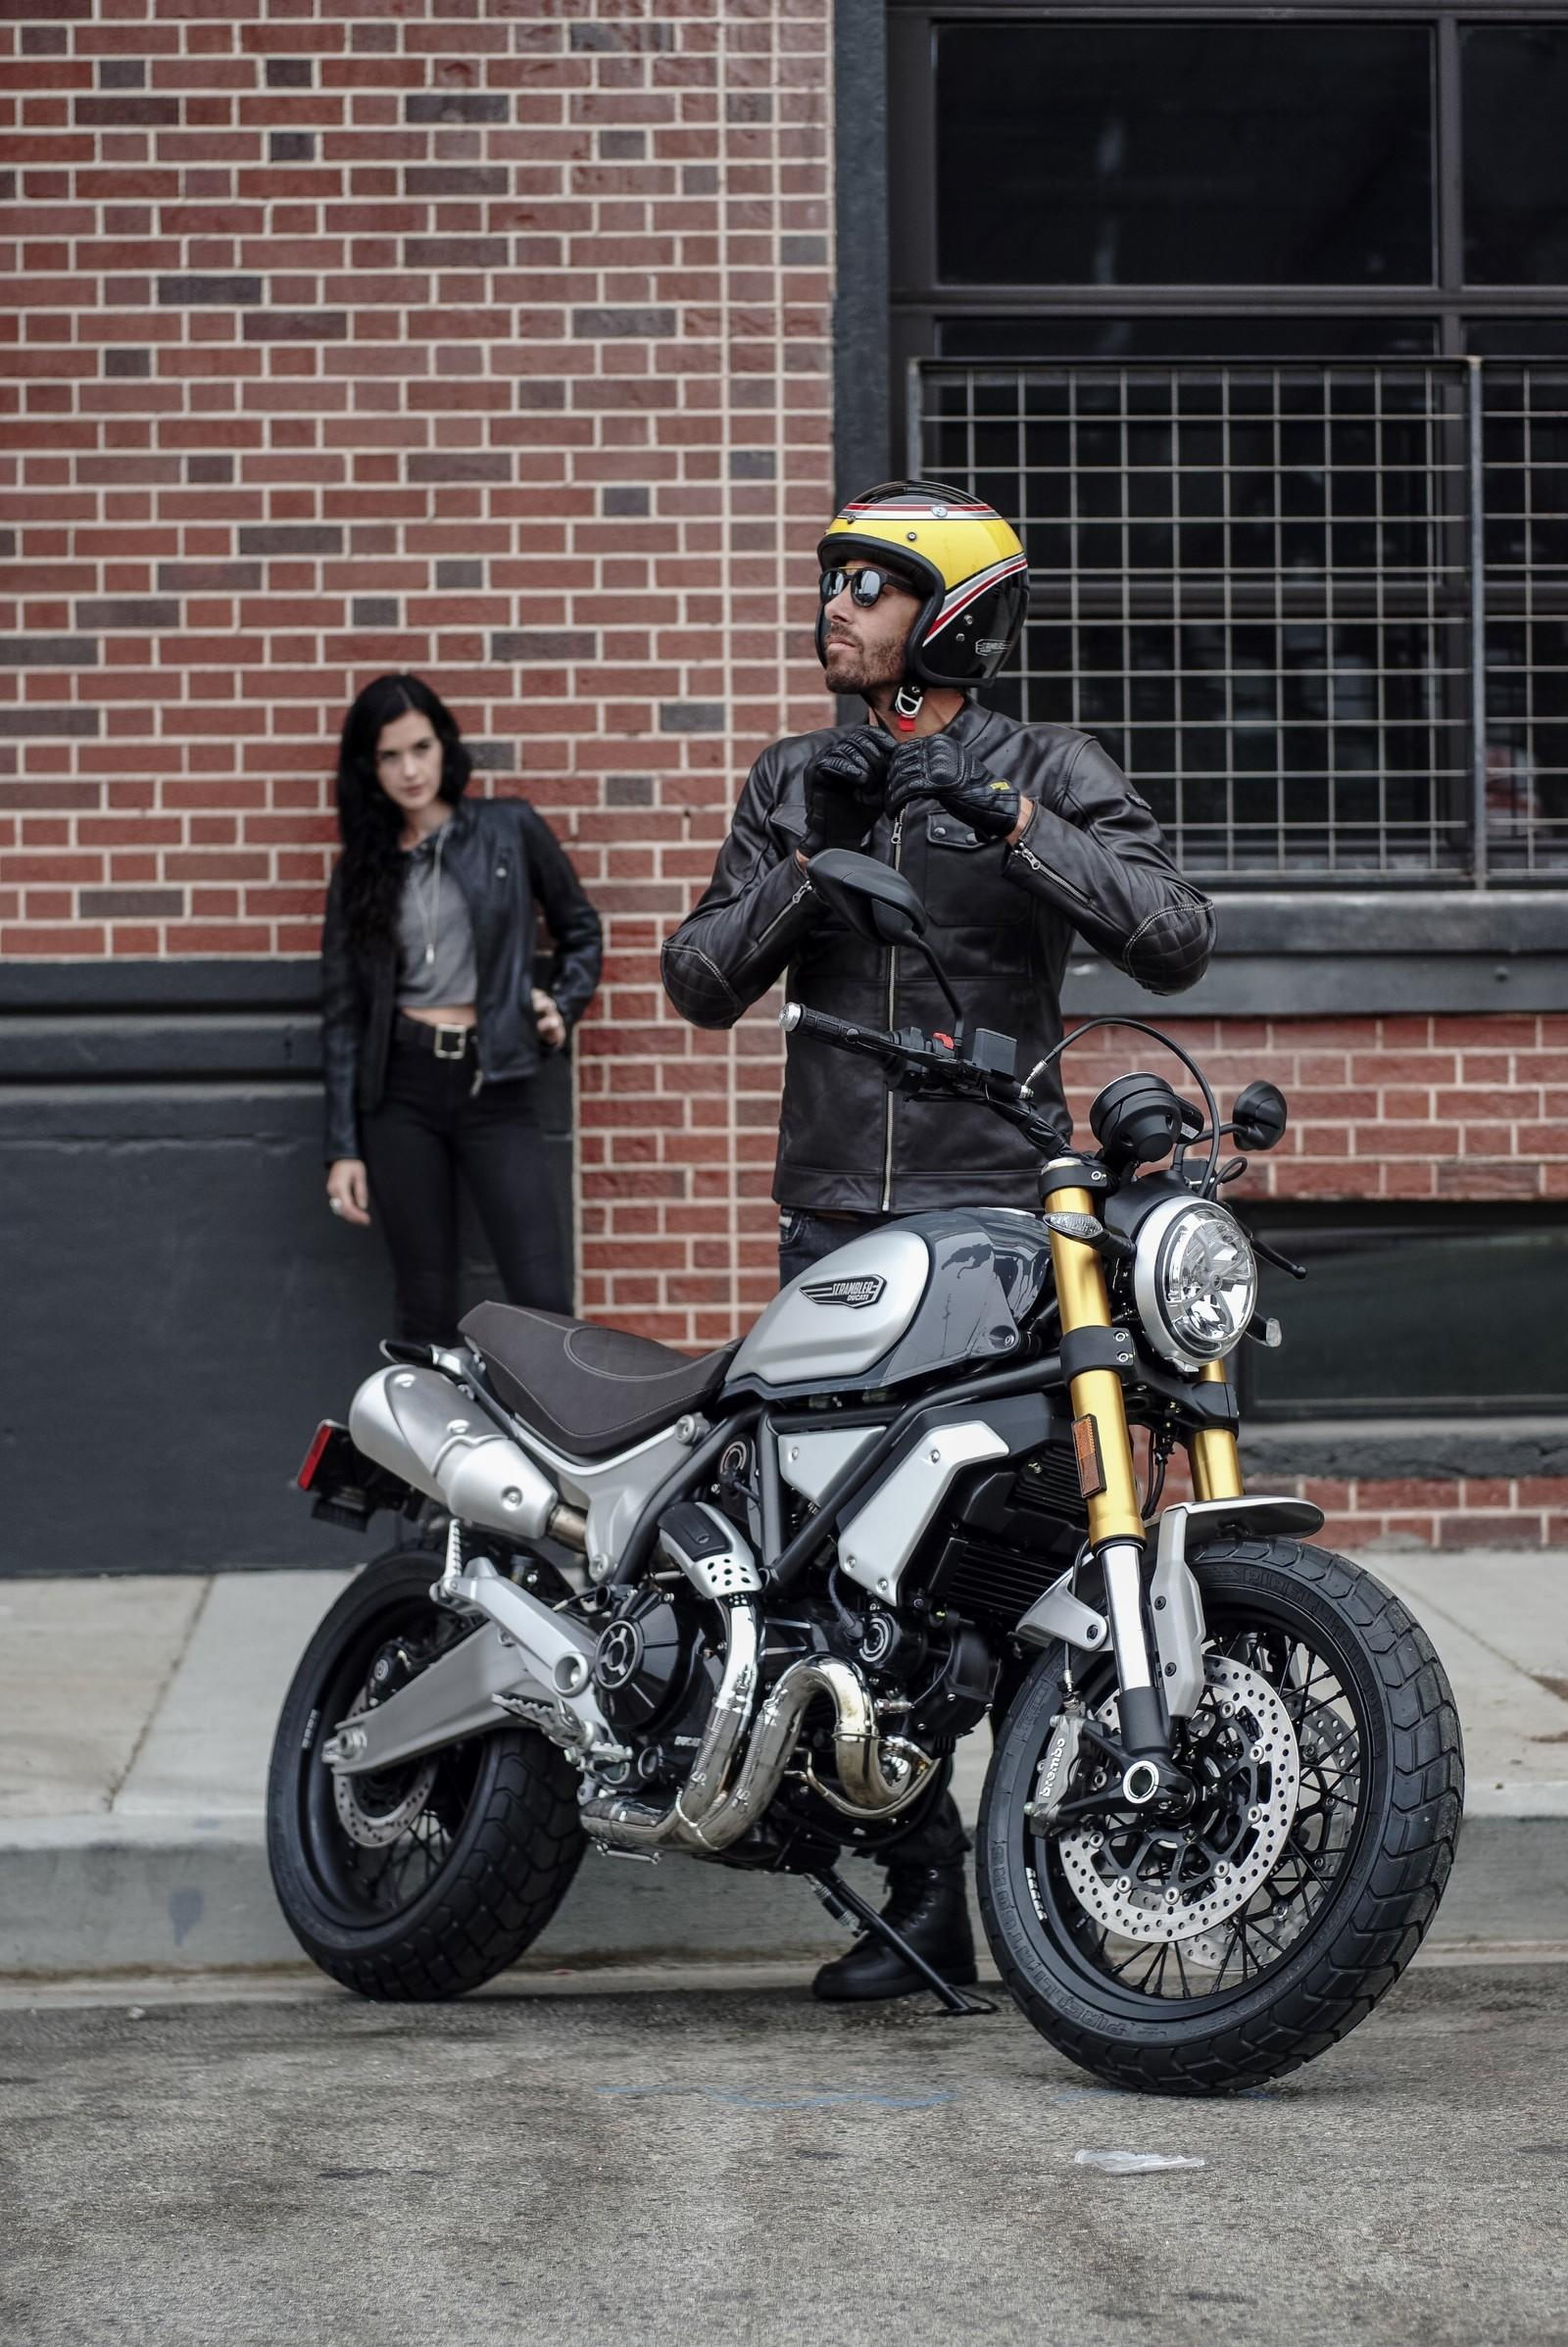 new 2018 ducati scrambler 1100 revealed specs features. Black Bedroom Furniture Sets. Home Design Ideas